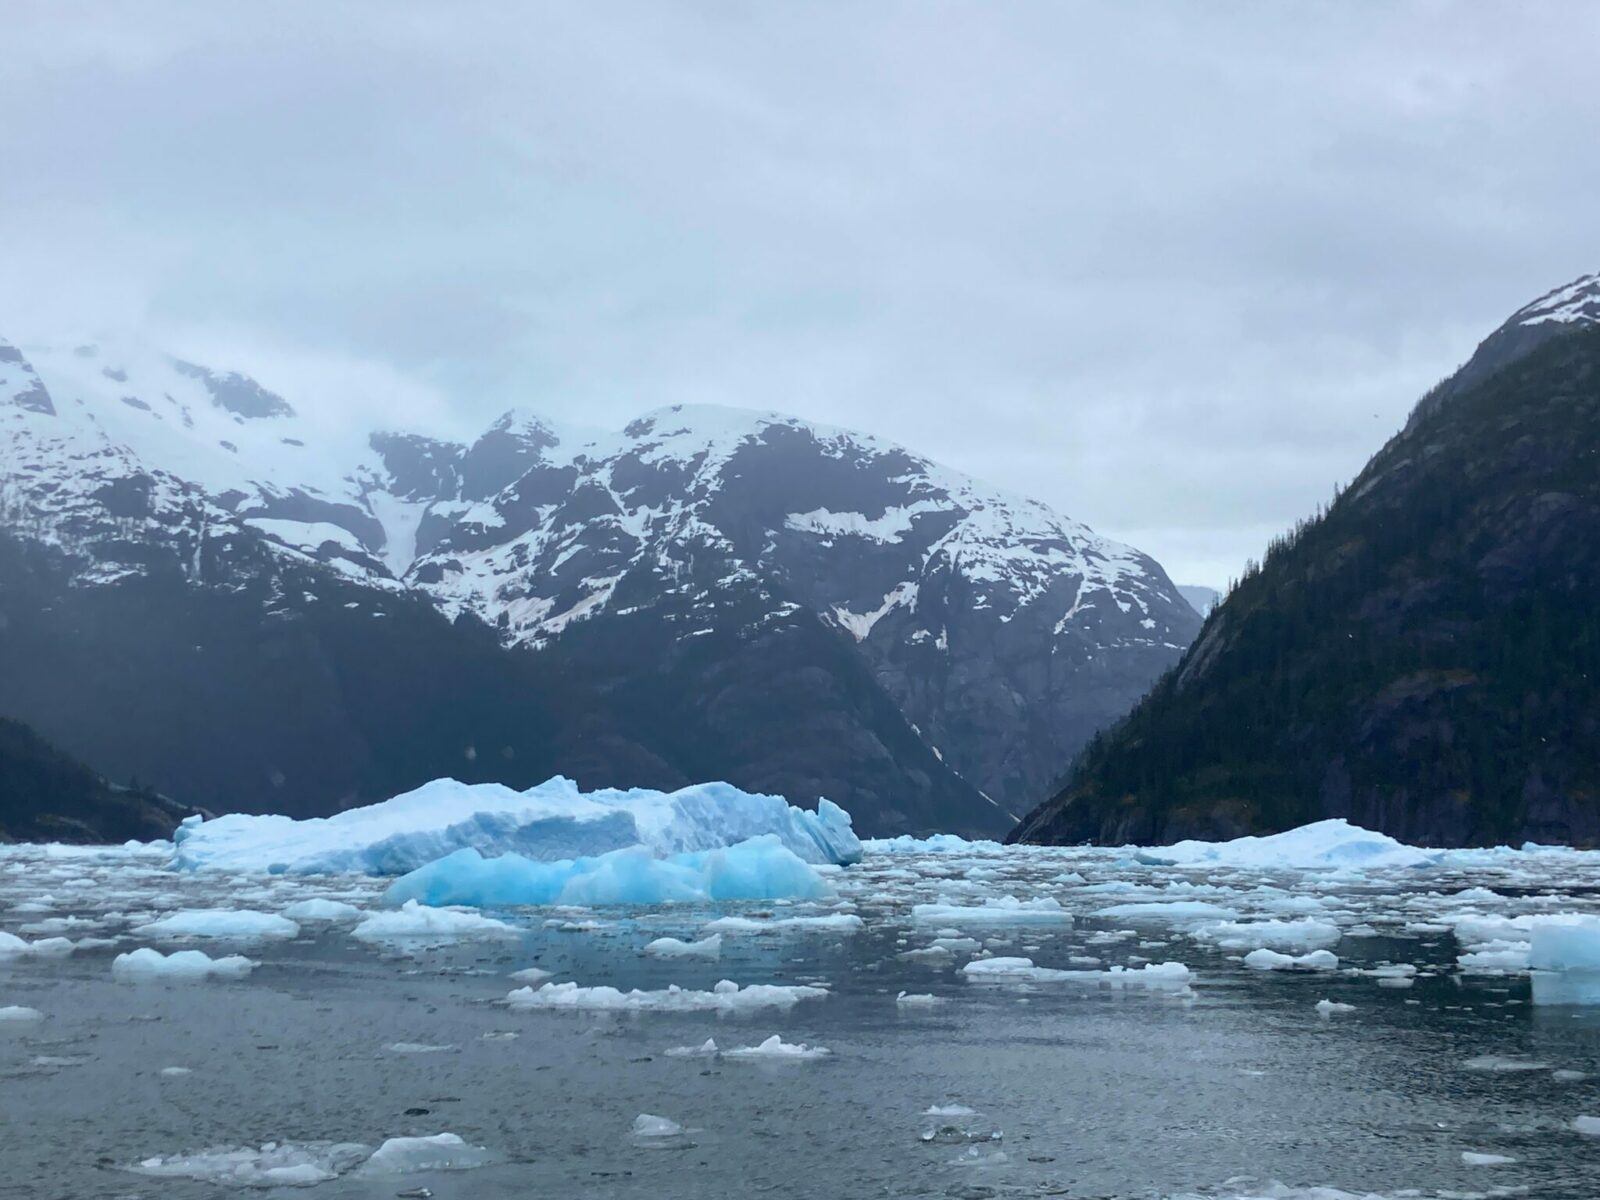 A fjord full of glacial ice bergs in a narrow bay surrounded by high mountains and snow on a cloudy and rainy day